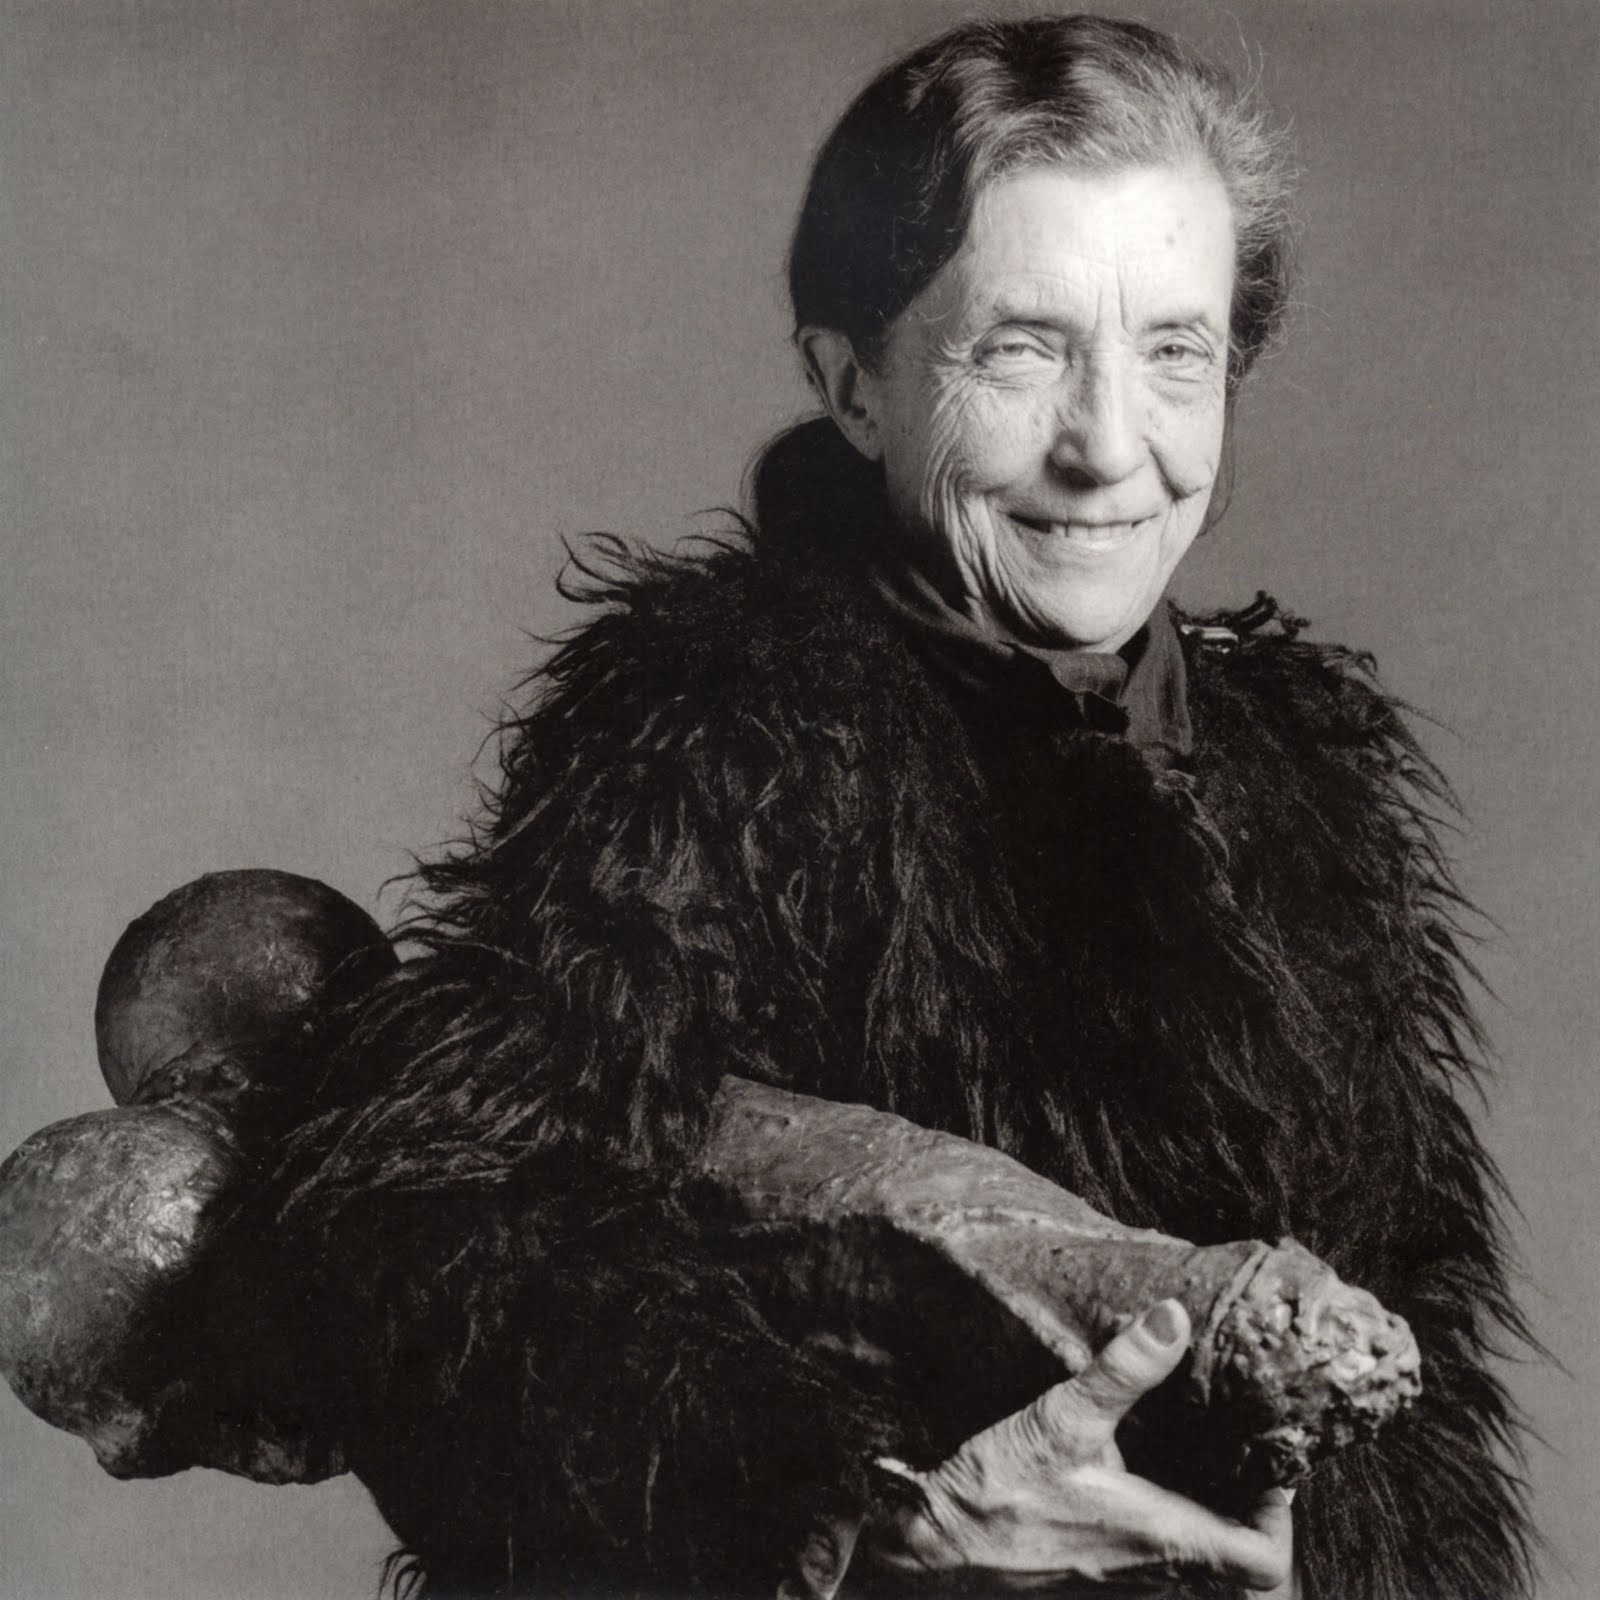 a-louise-bourgeois-1-por-robert-mapplethorpe